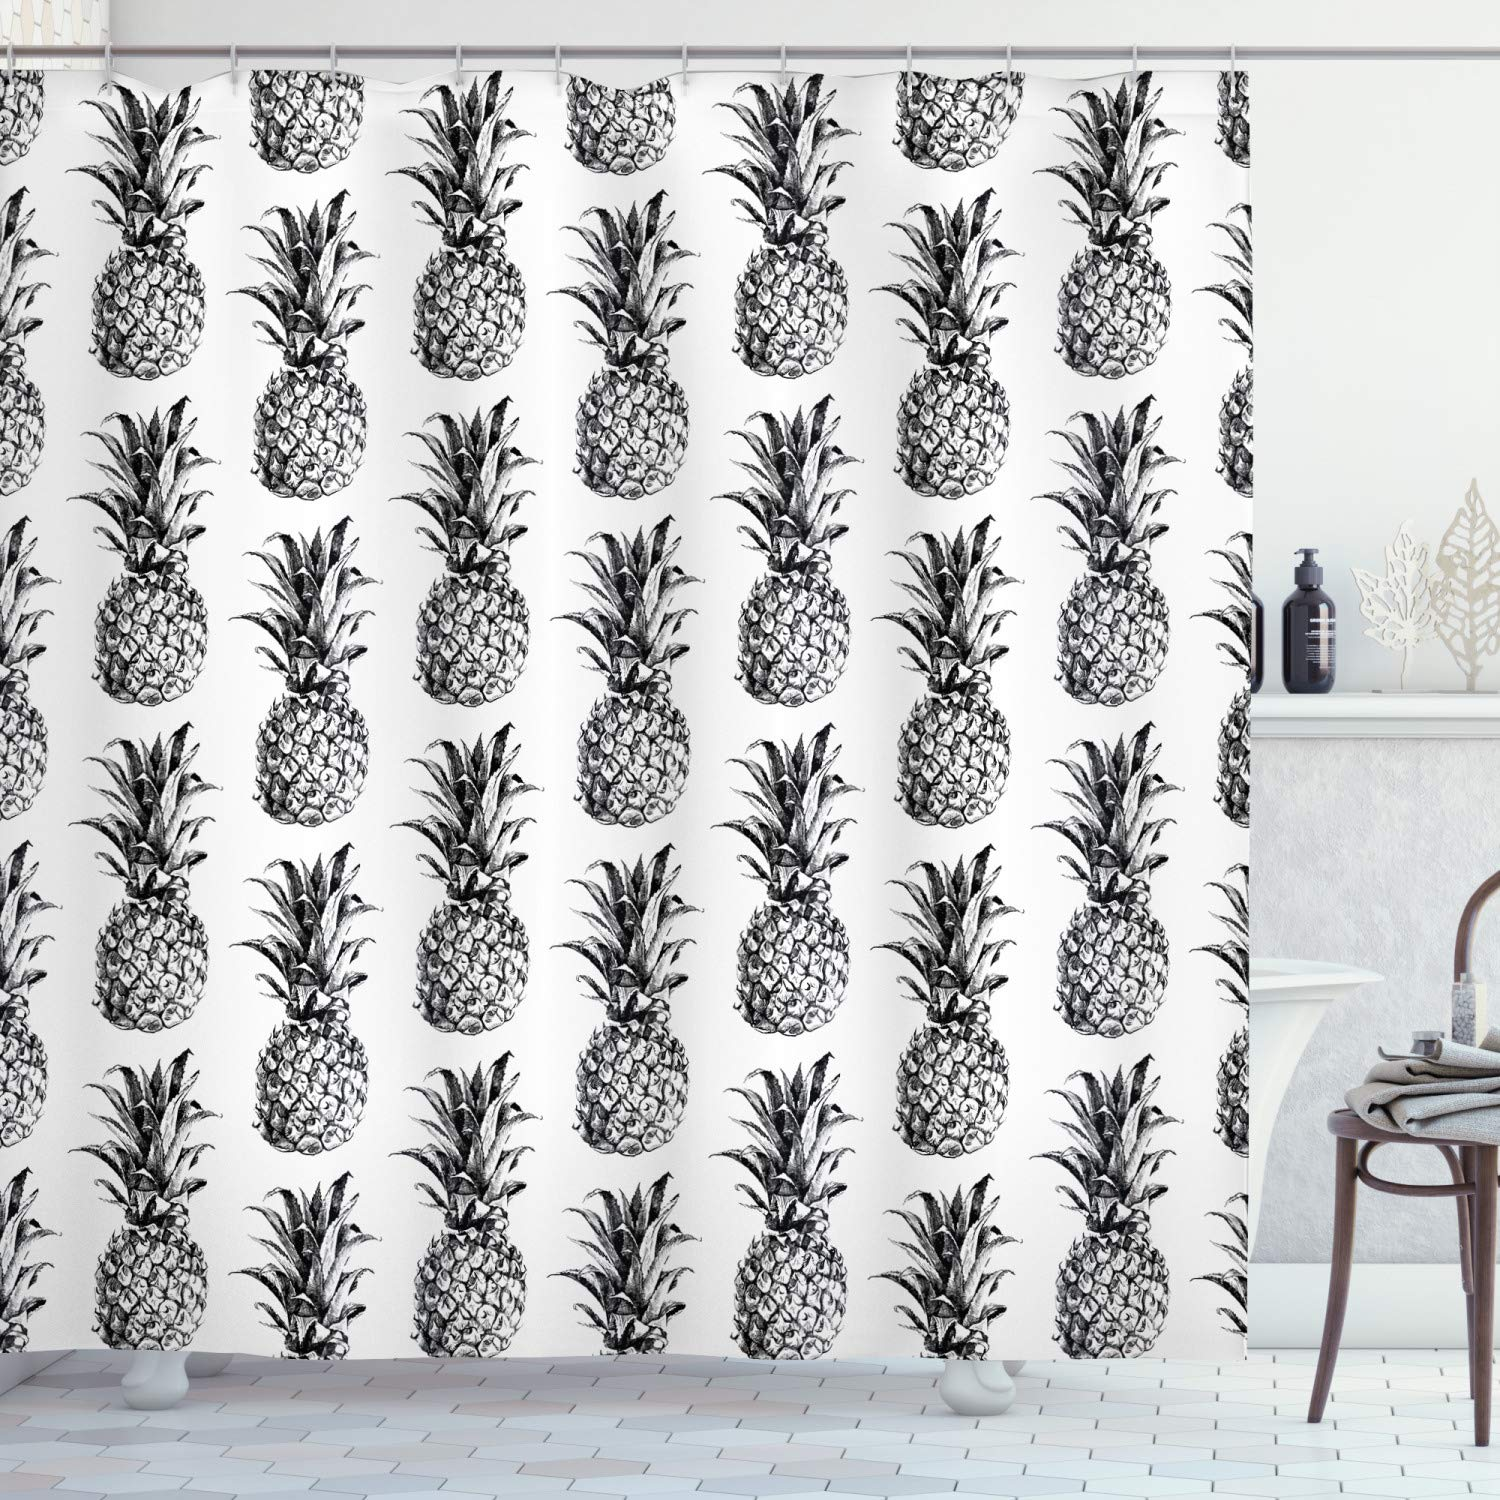 """Ambesonne Pineapple Shower Curtain, Hand Drawn Tropical Theme Vintage Style Pineapple Fruit Pattern, Cloth Fabric Bathroom Decor Set with Hooks, 70"""" Long, Black Gray"""